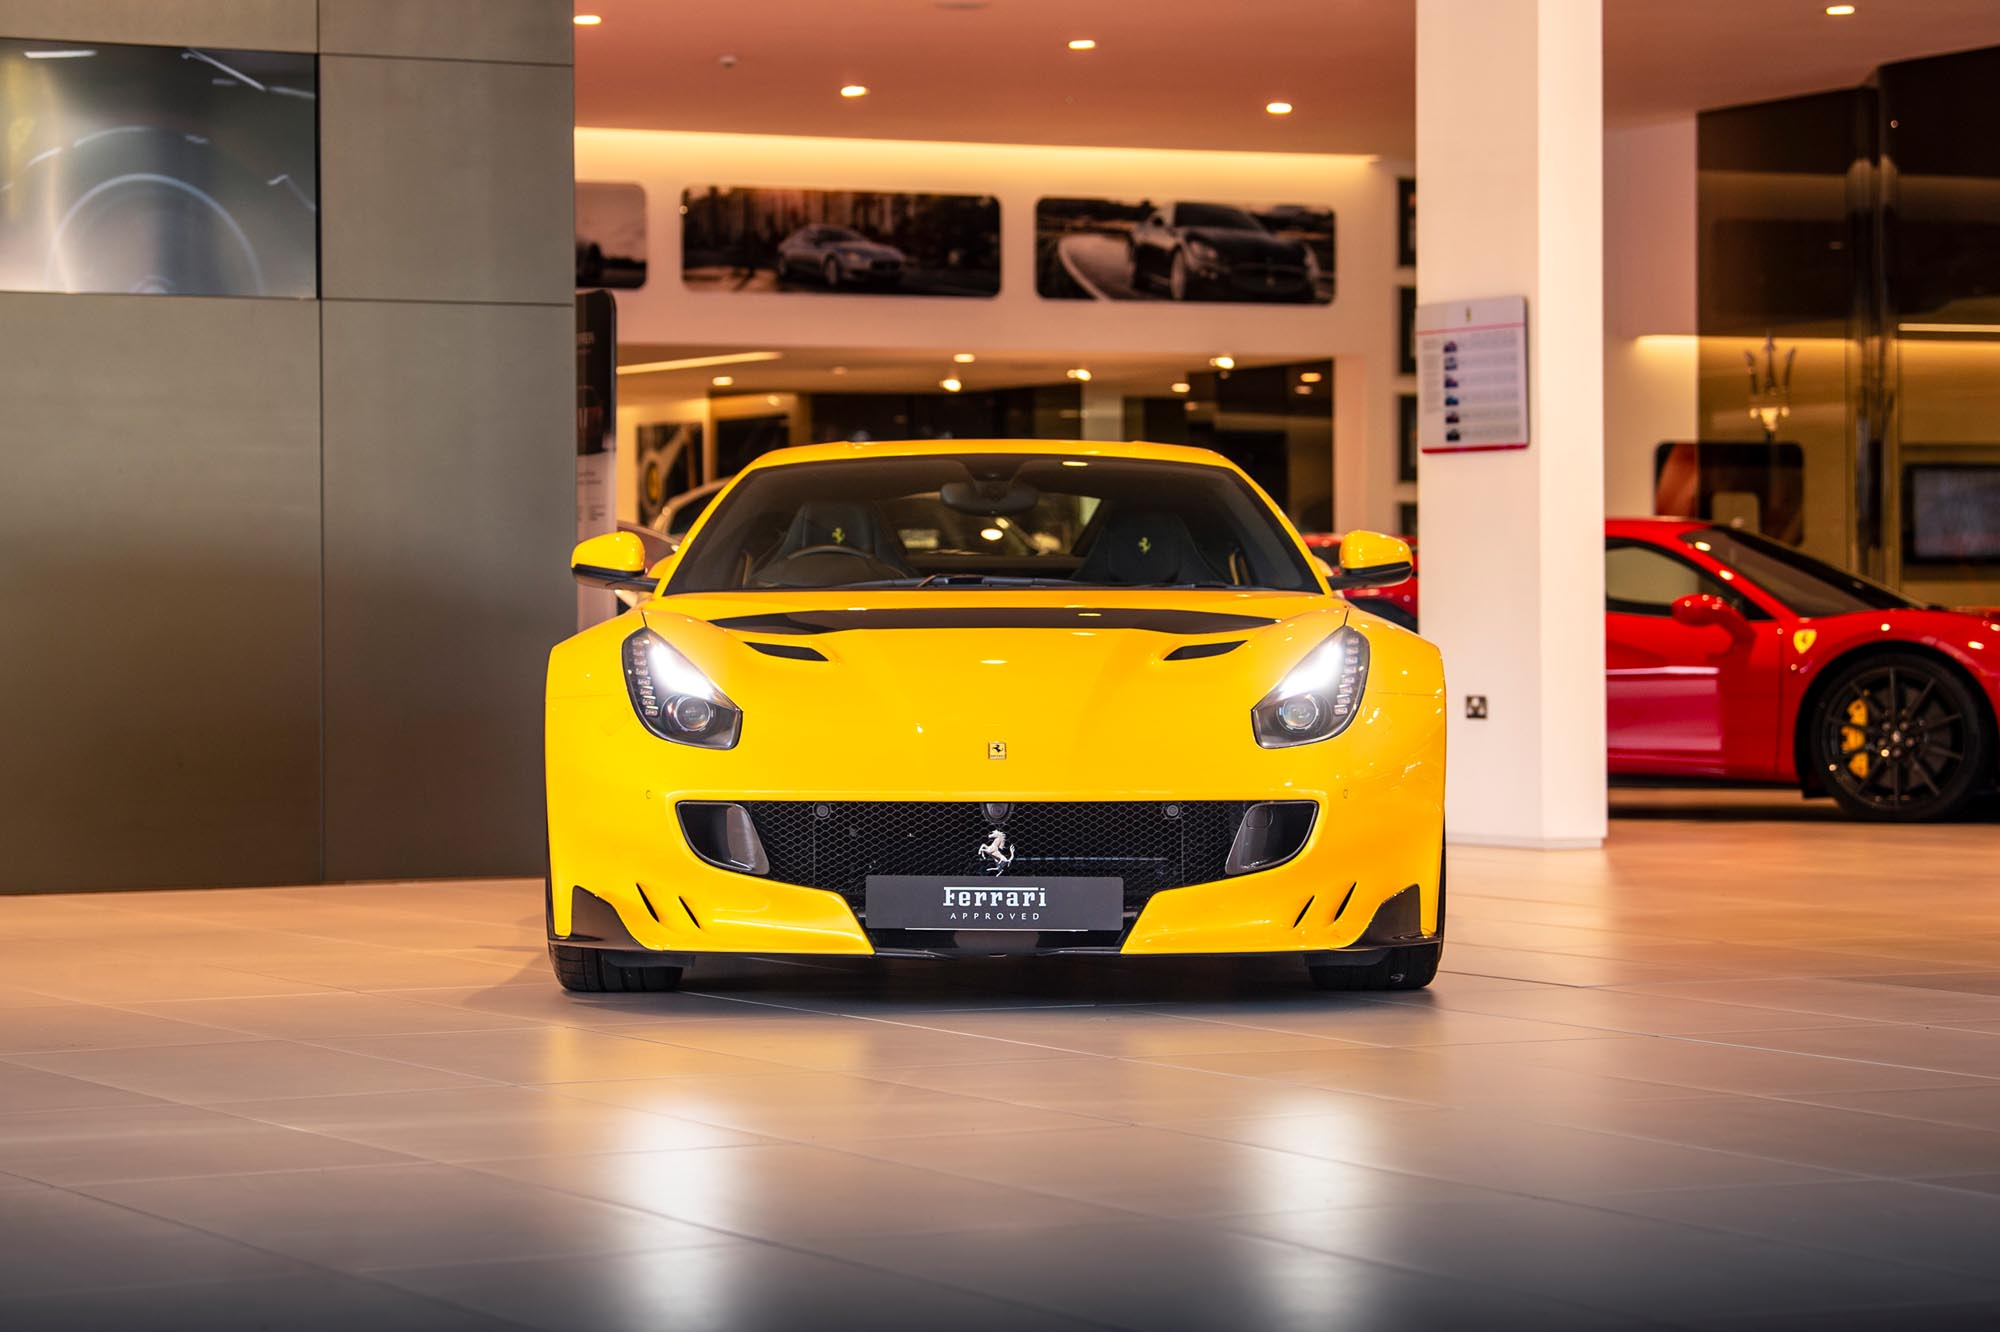 Ferrari F12 TDF automotive photography for Ferrari Brooklands Leeds